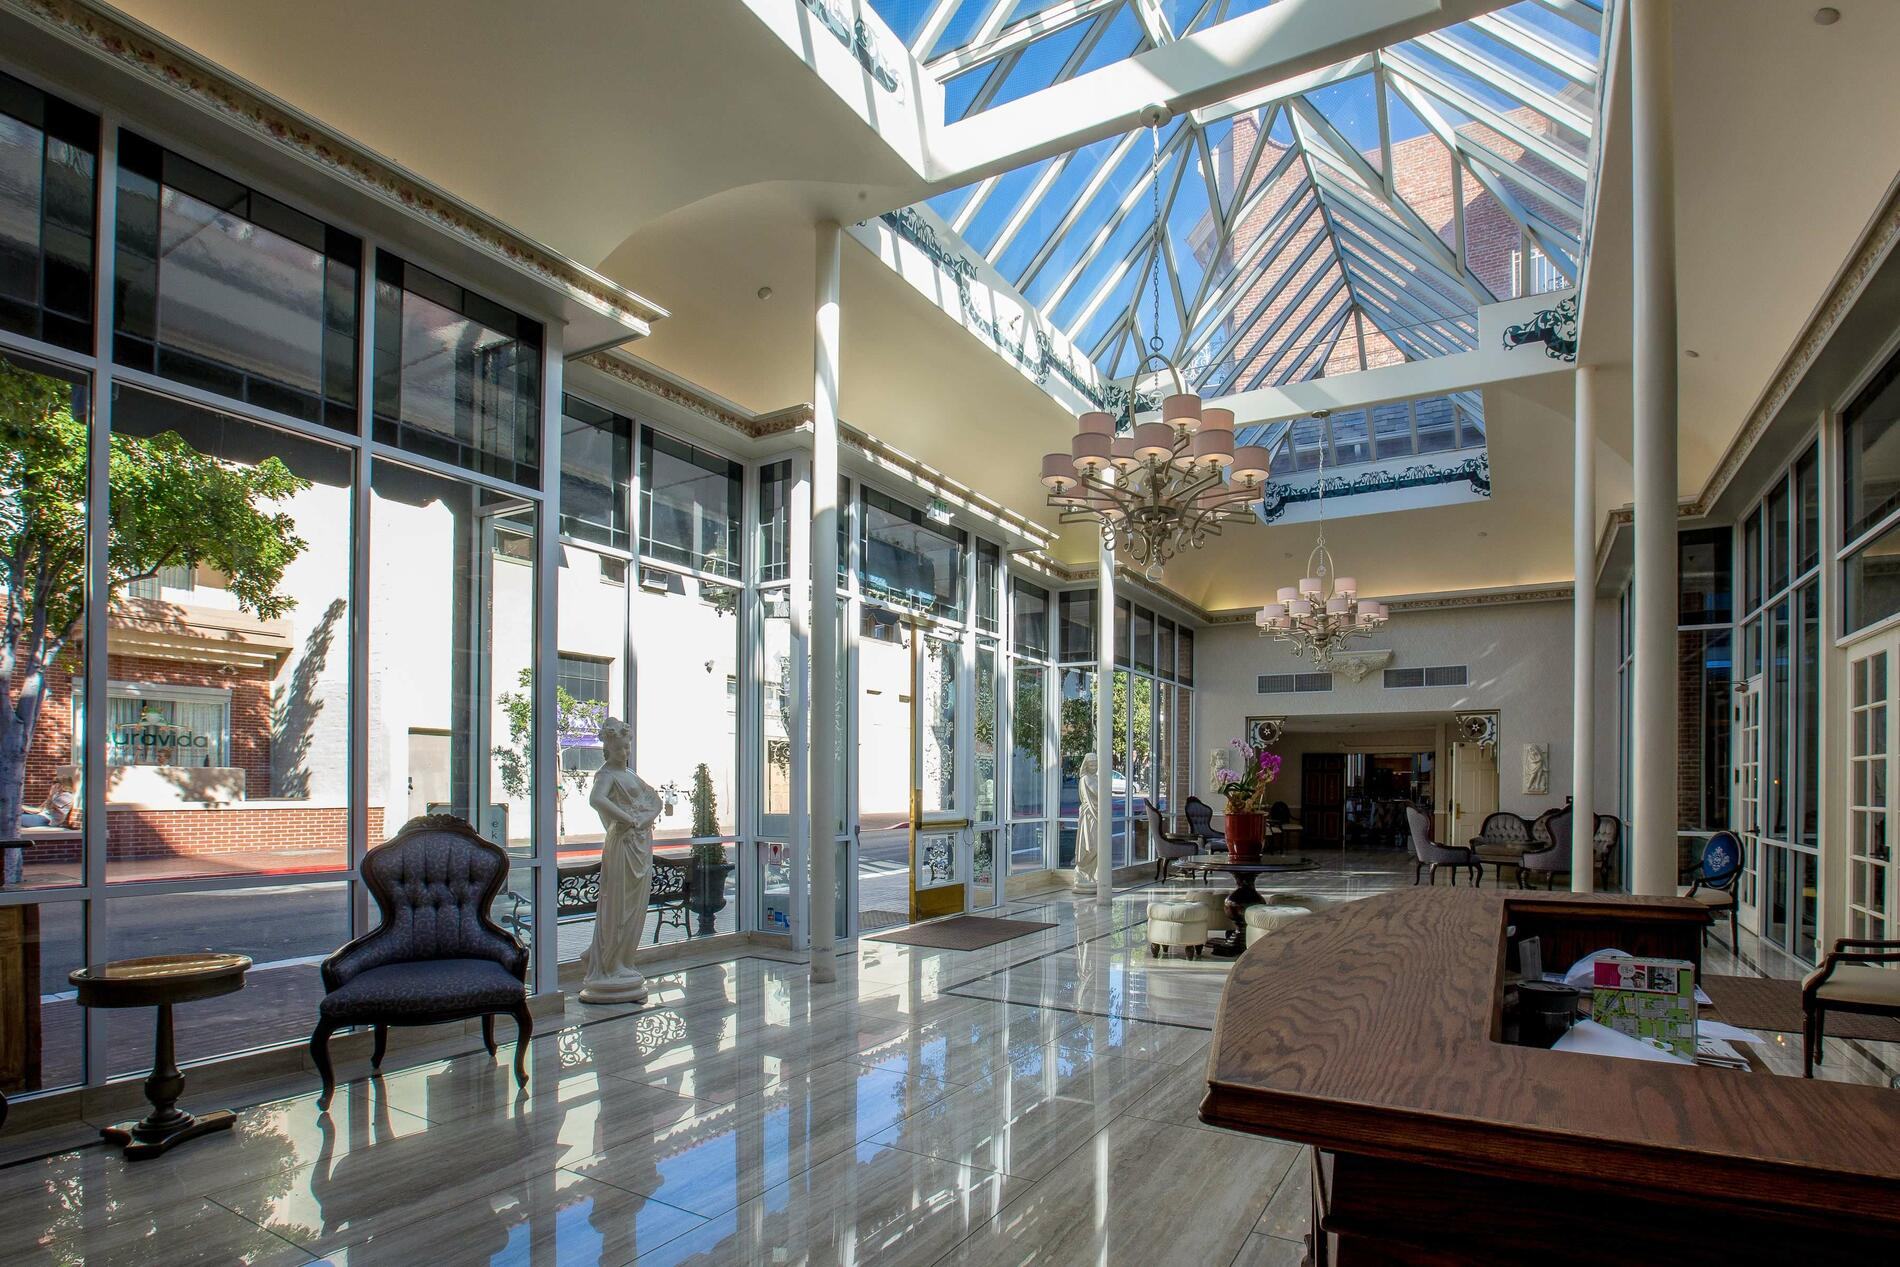 Hotel lobby with skylights and check in desk